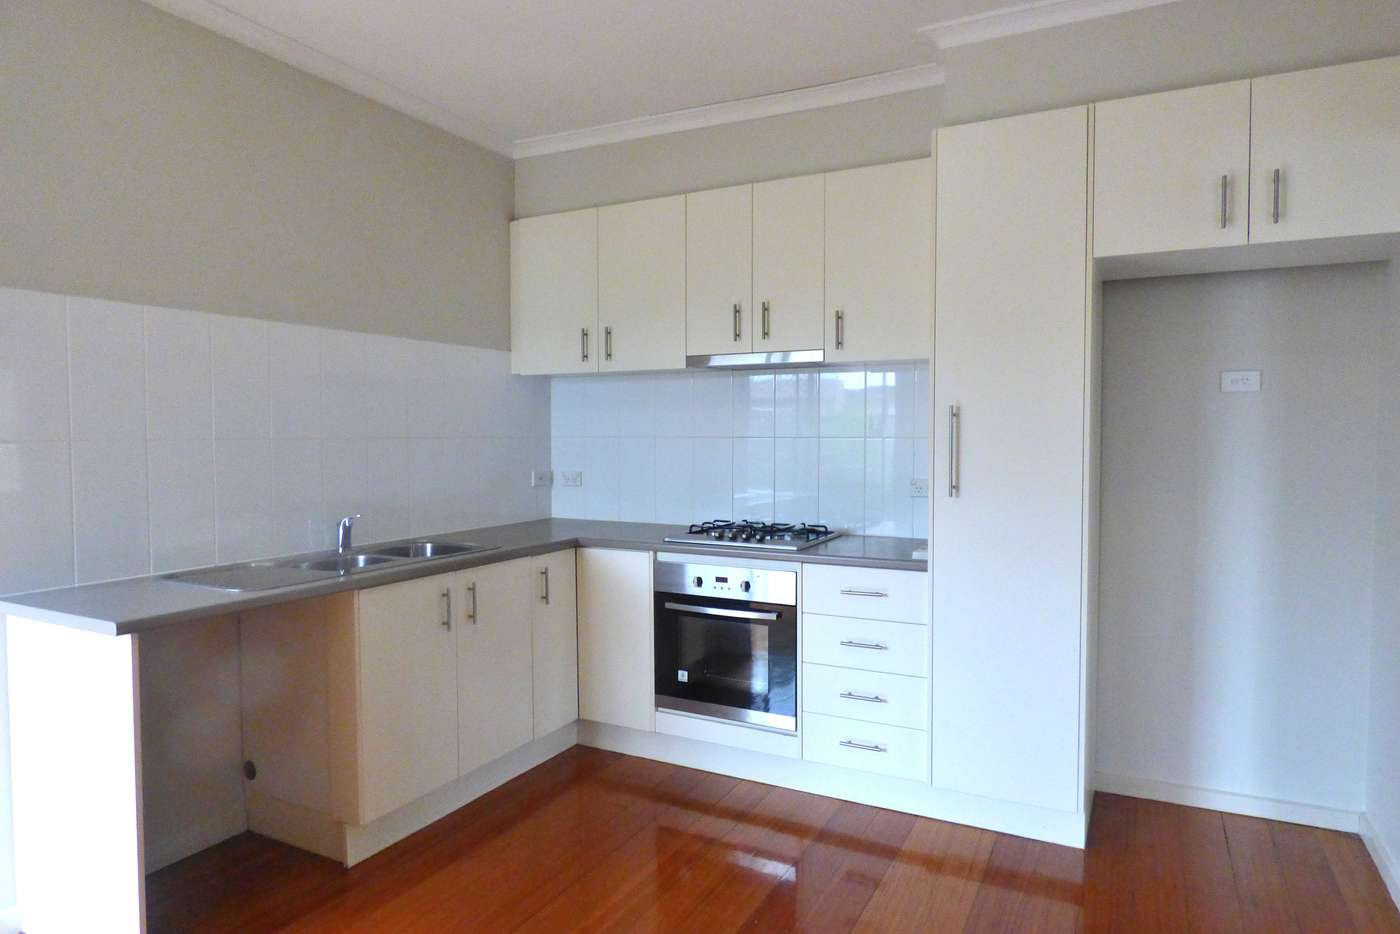 Sixth view of Homely house listing, 1/10 Tovey Street, Reservoir VIC 3073